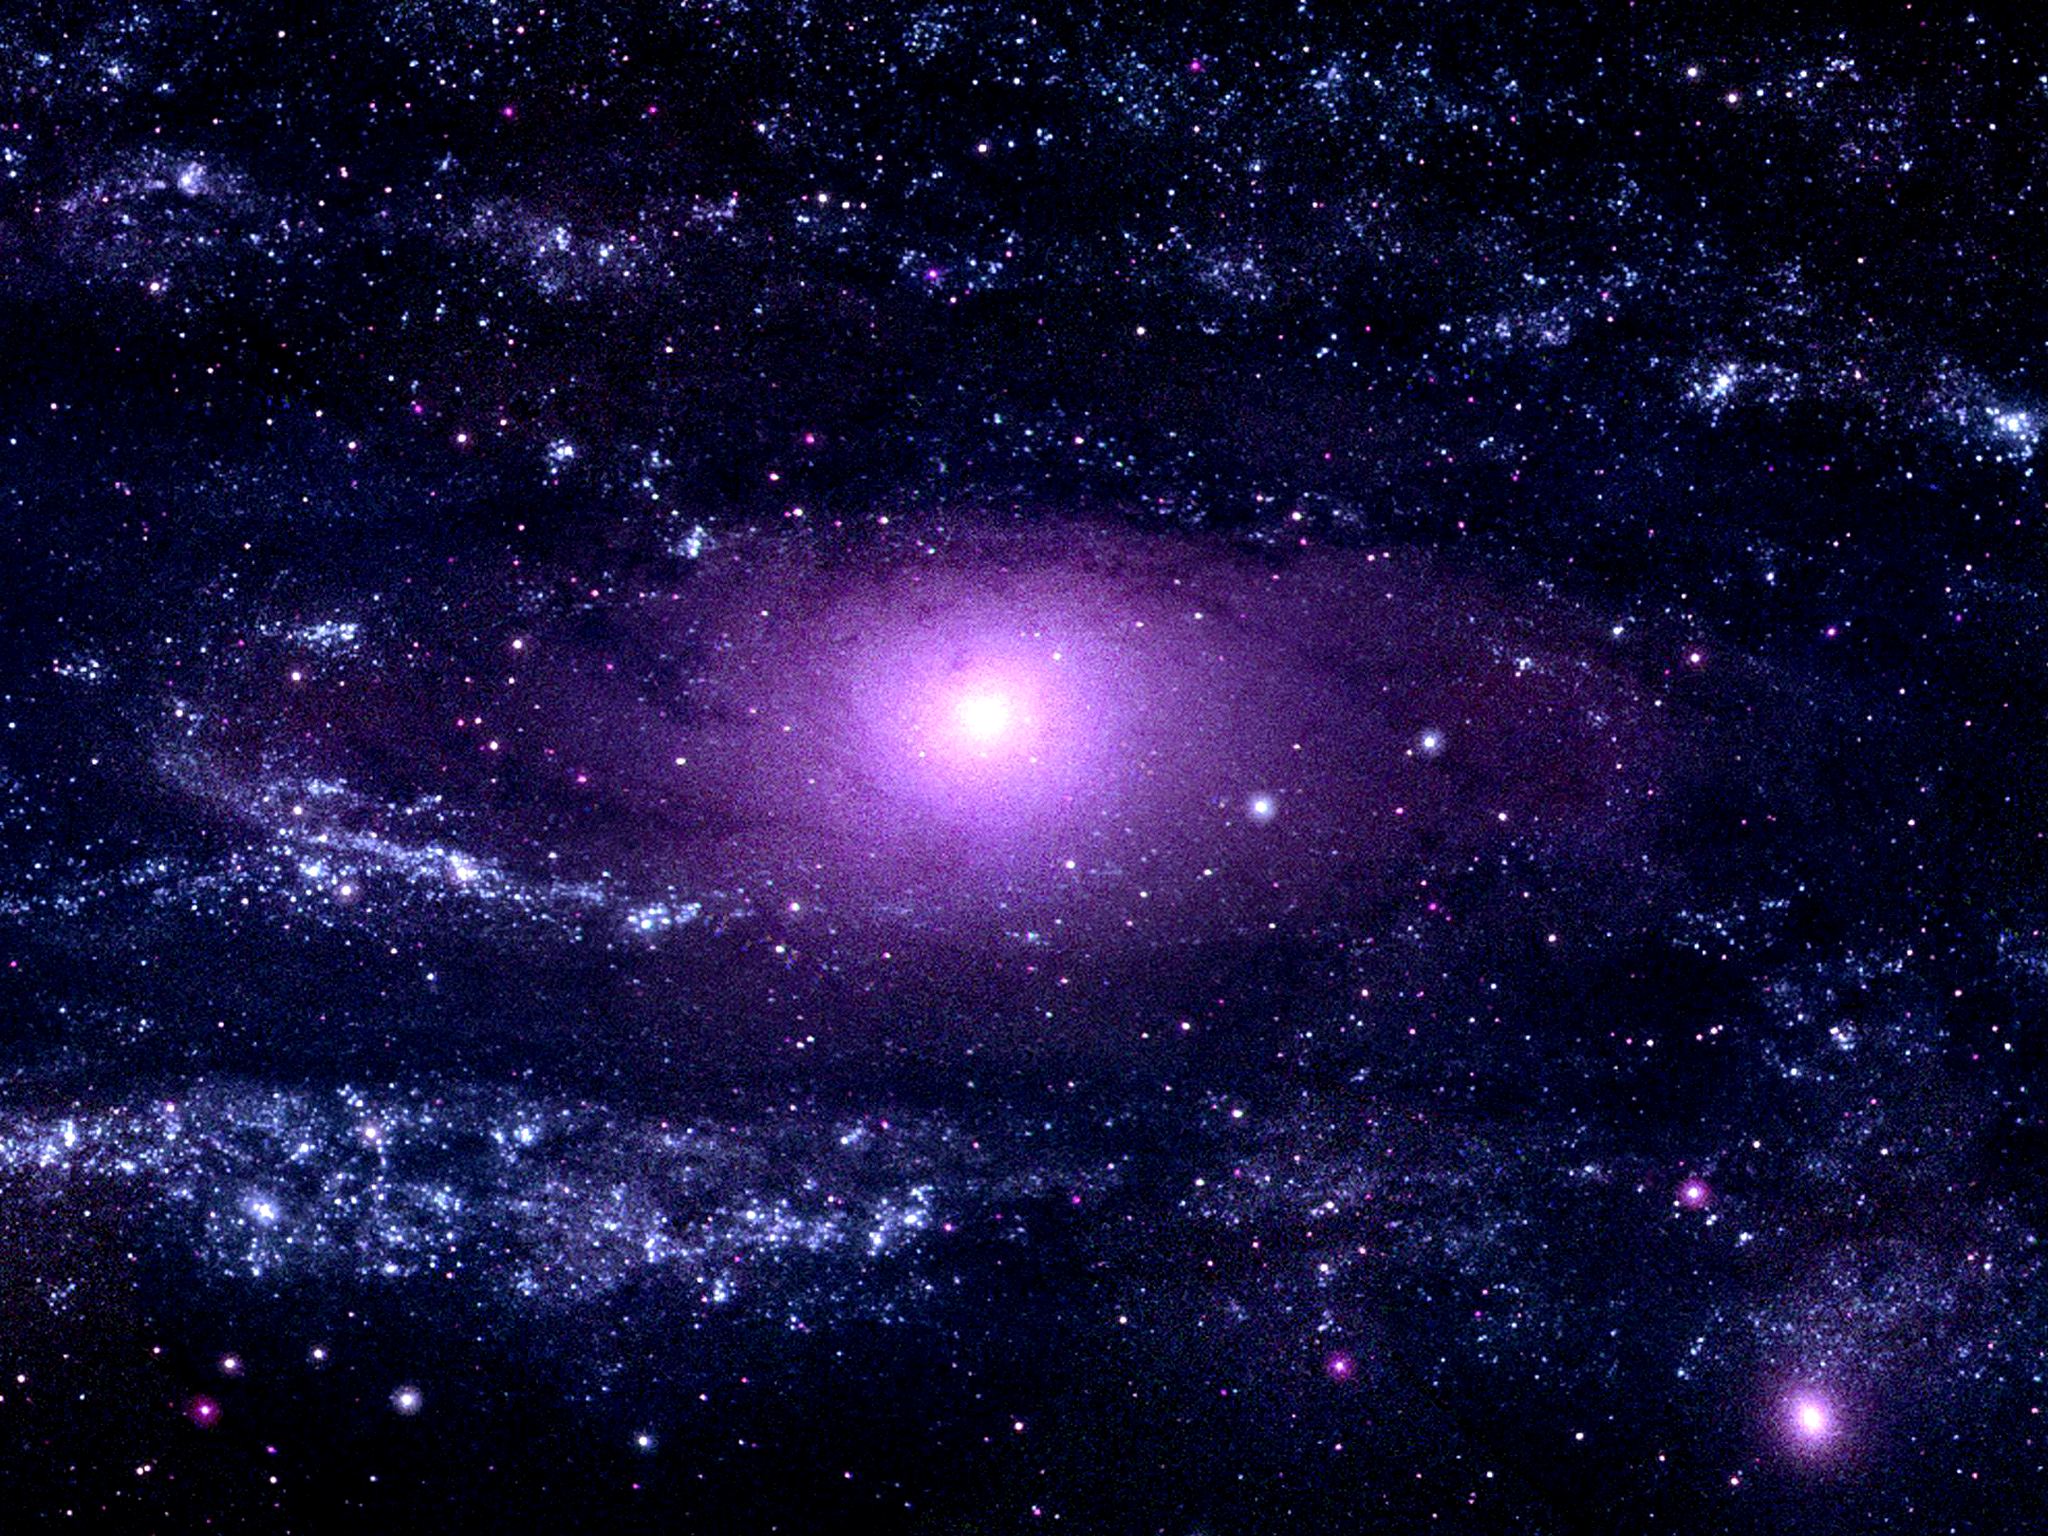 It all started with a bang, but the universe may not be expanding after all | The Independent